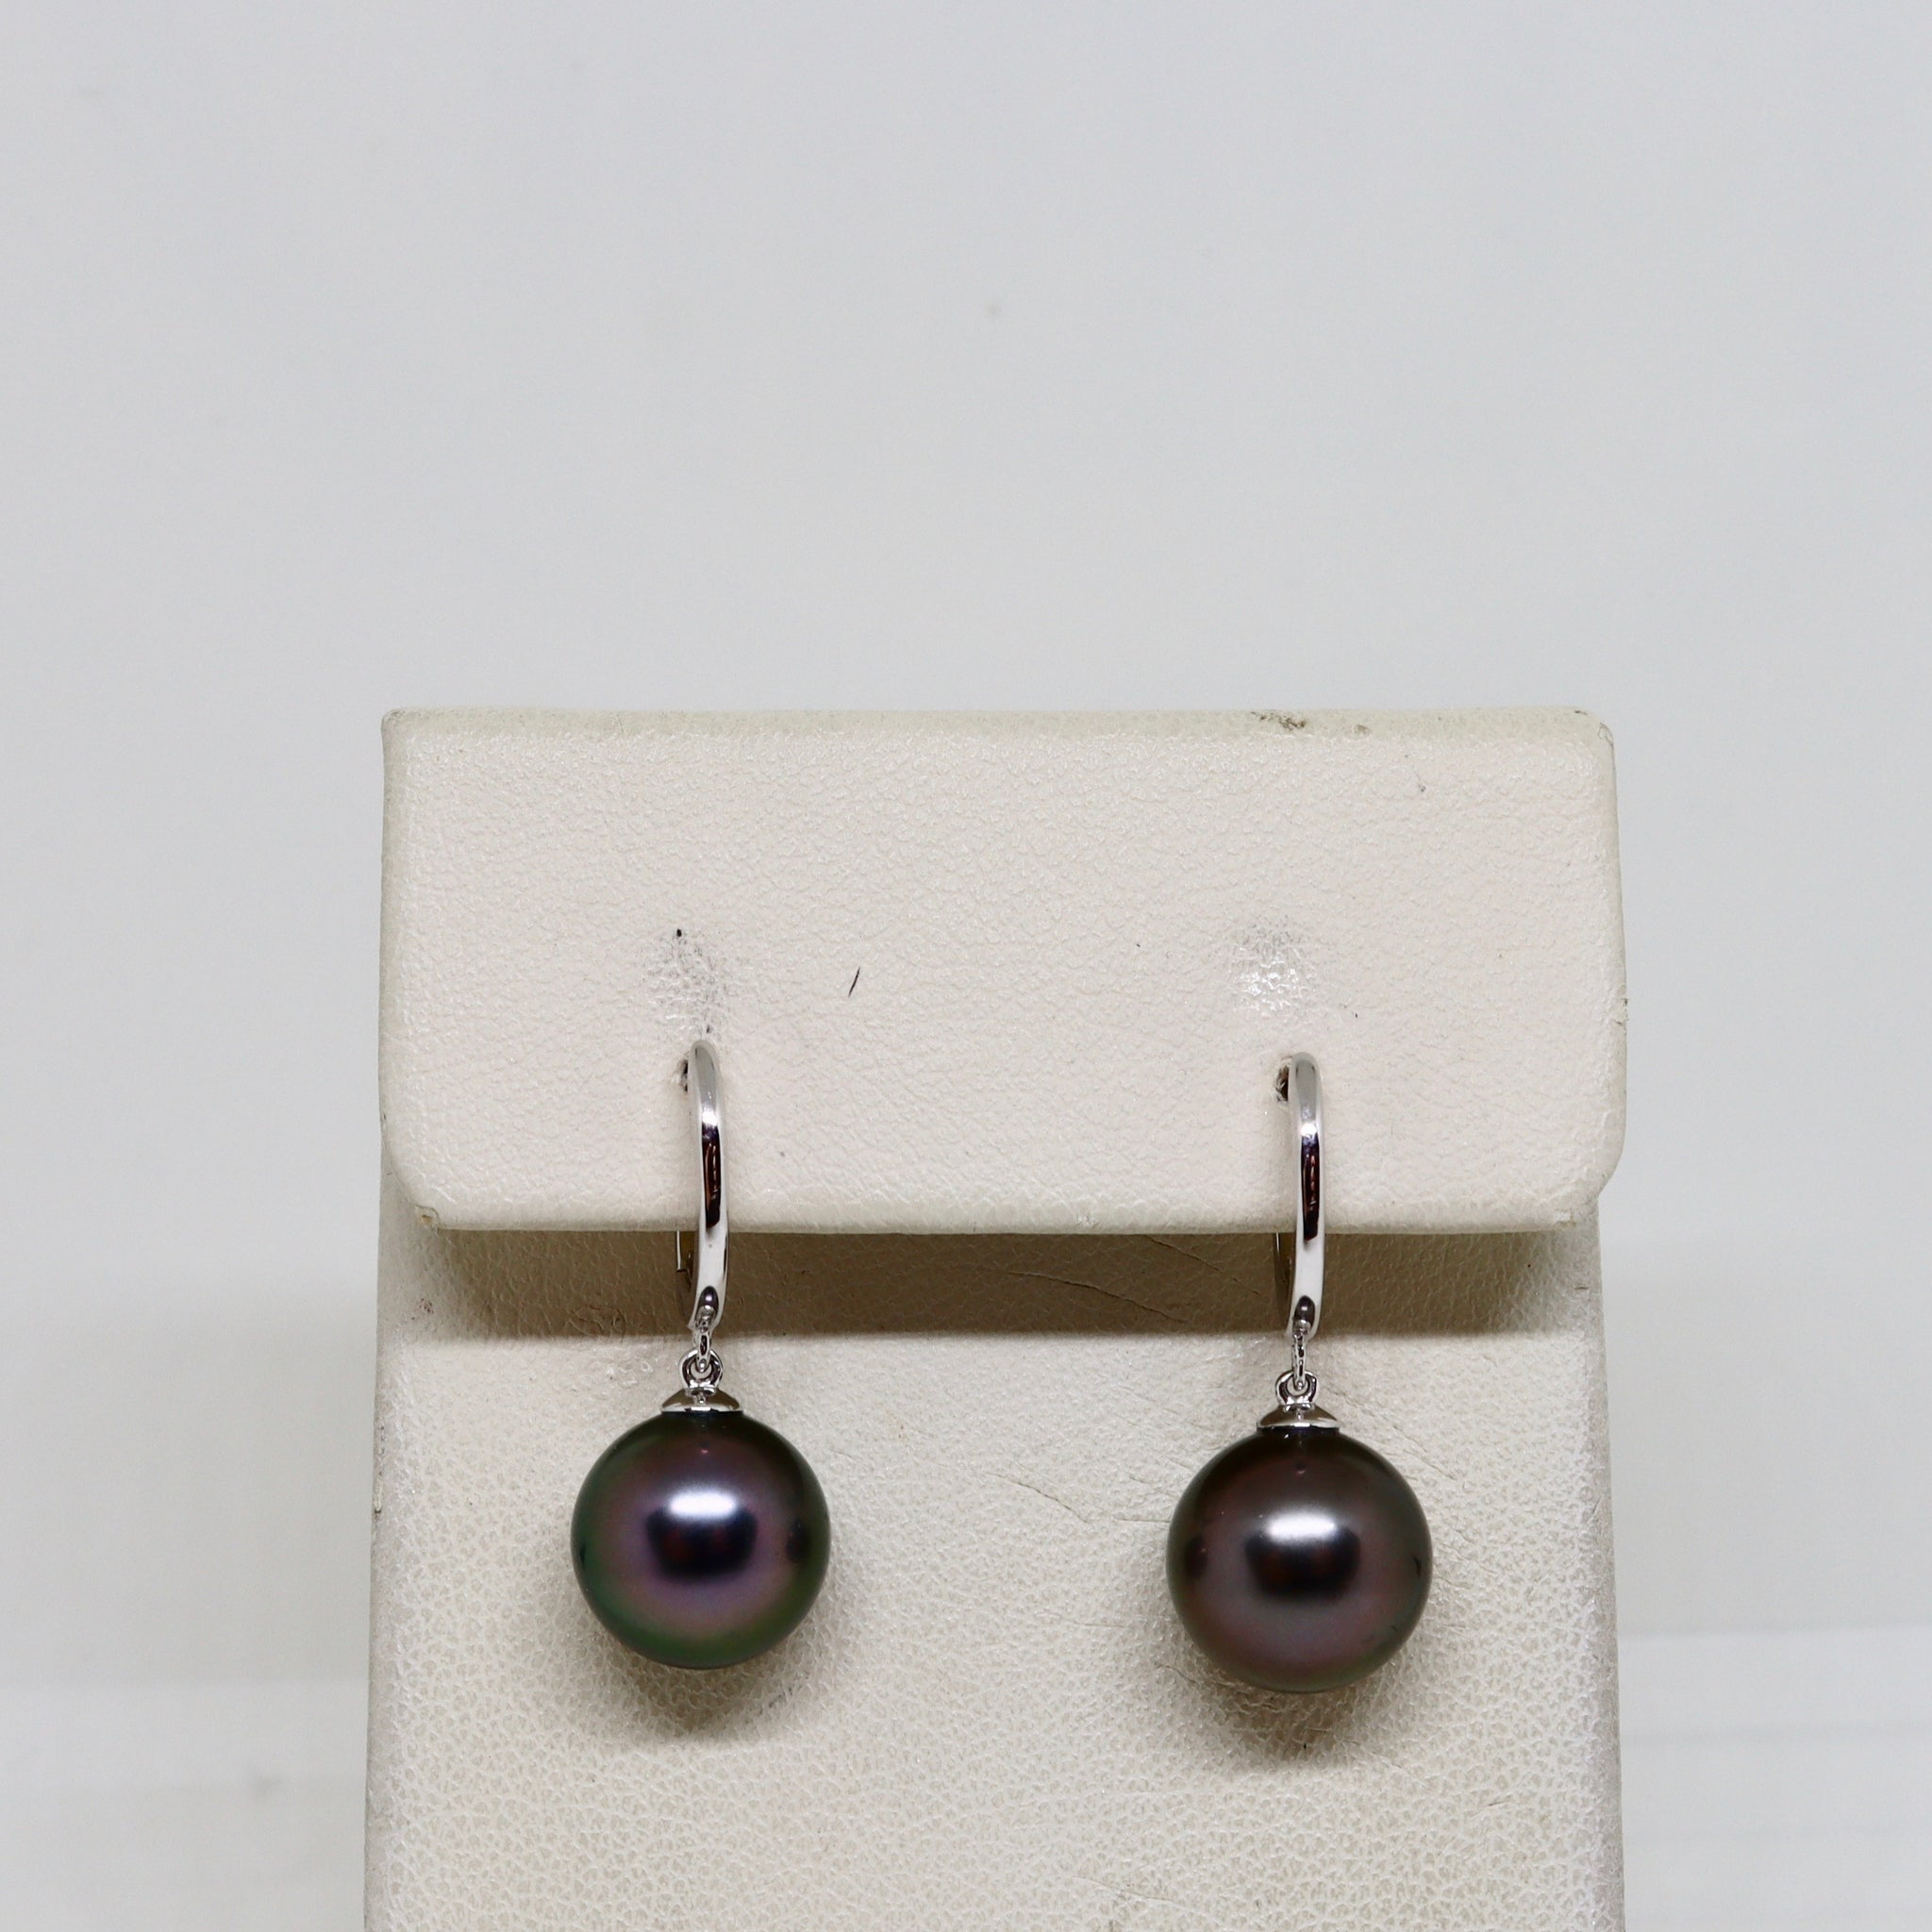 Black south sea pearl drop earrings